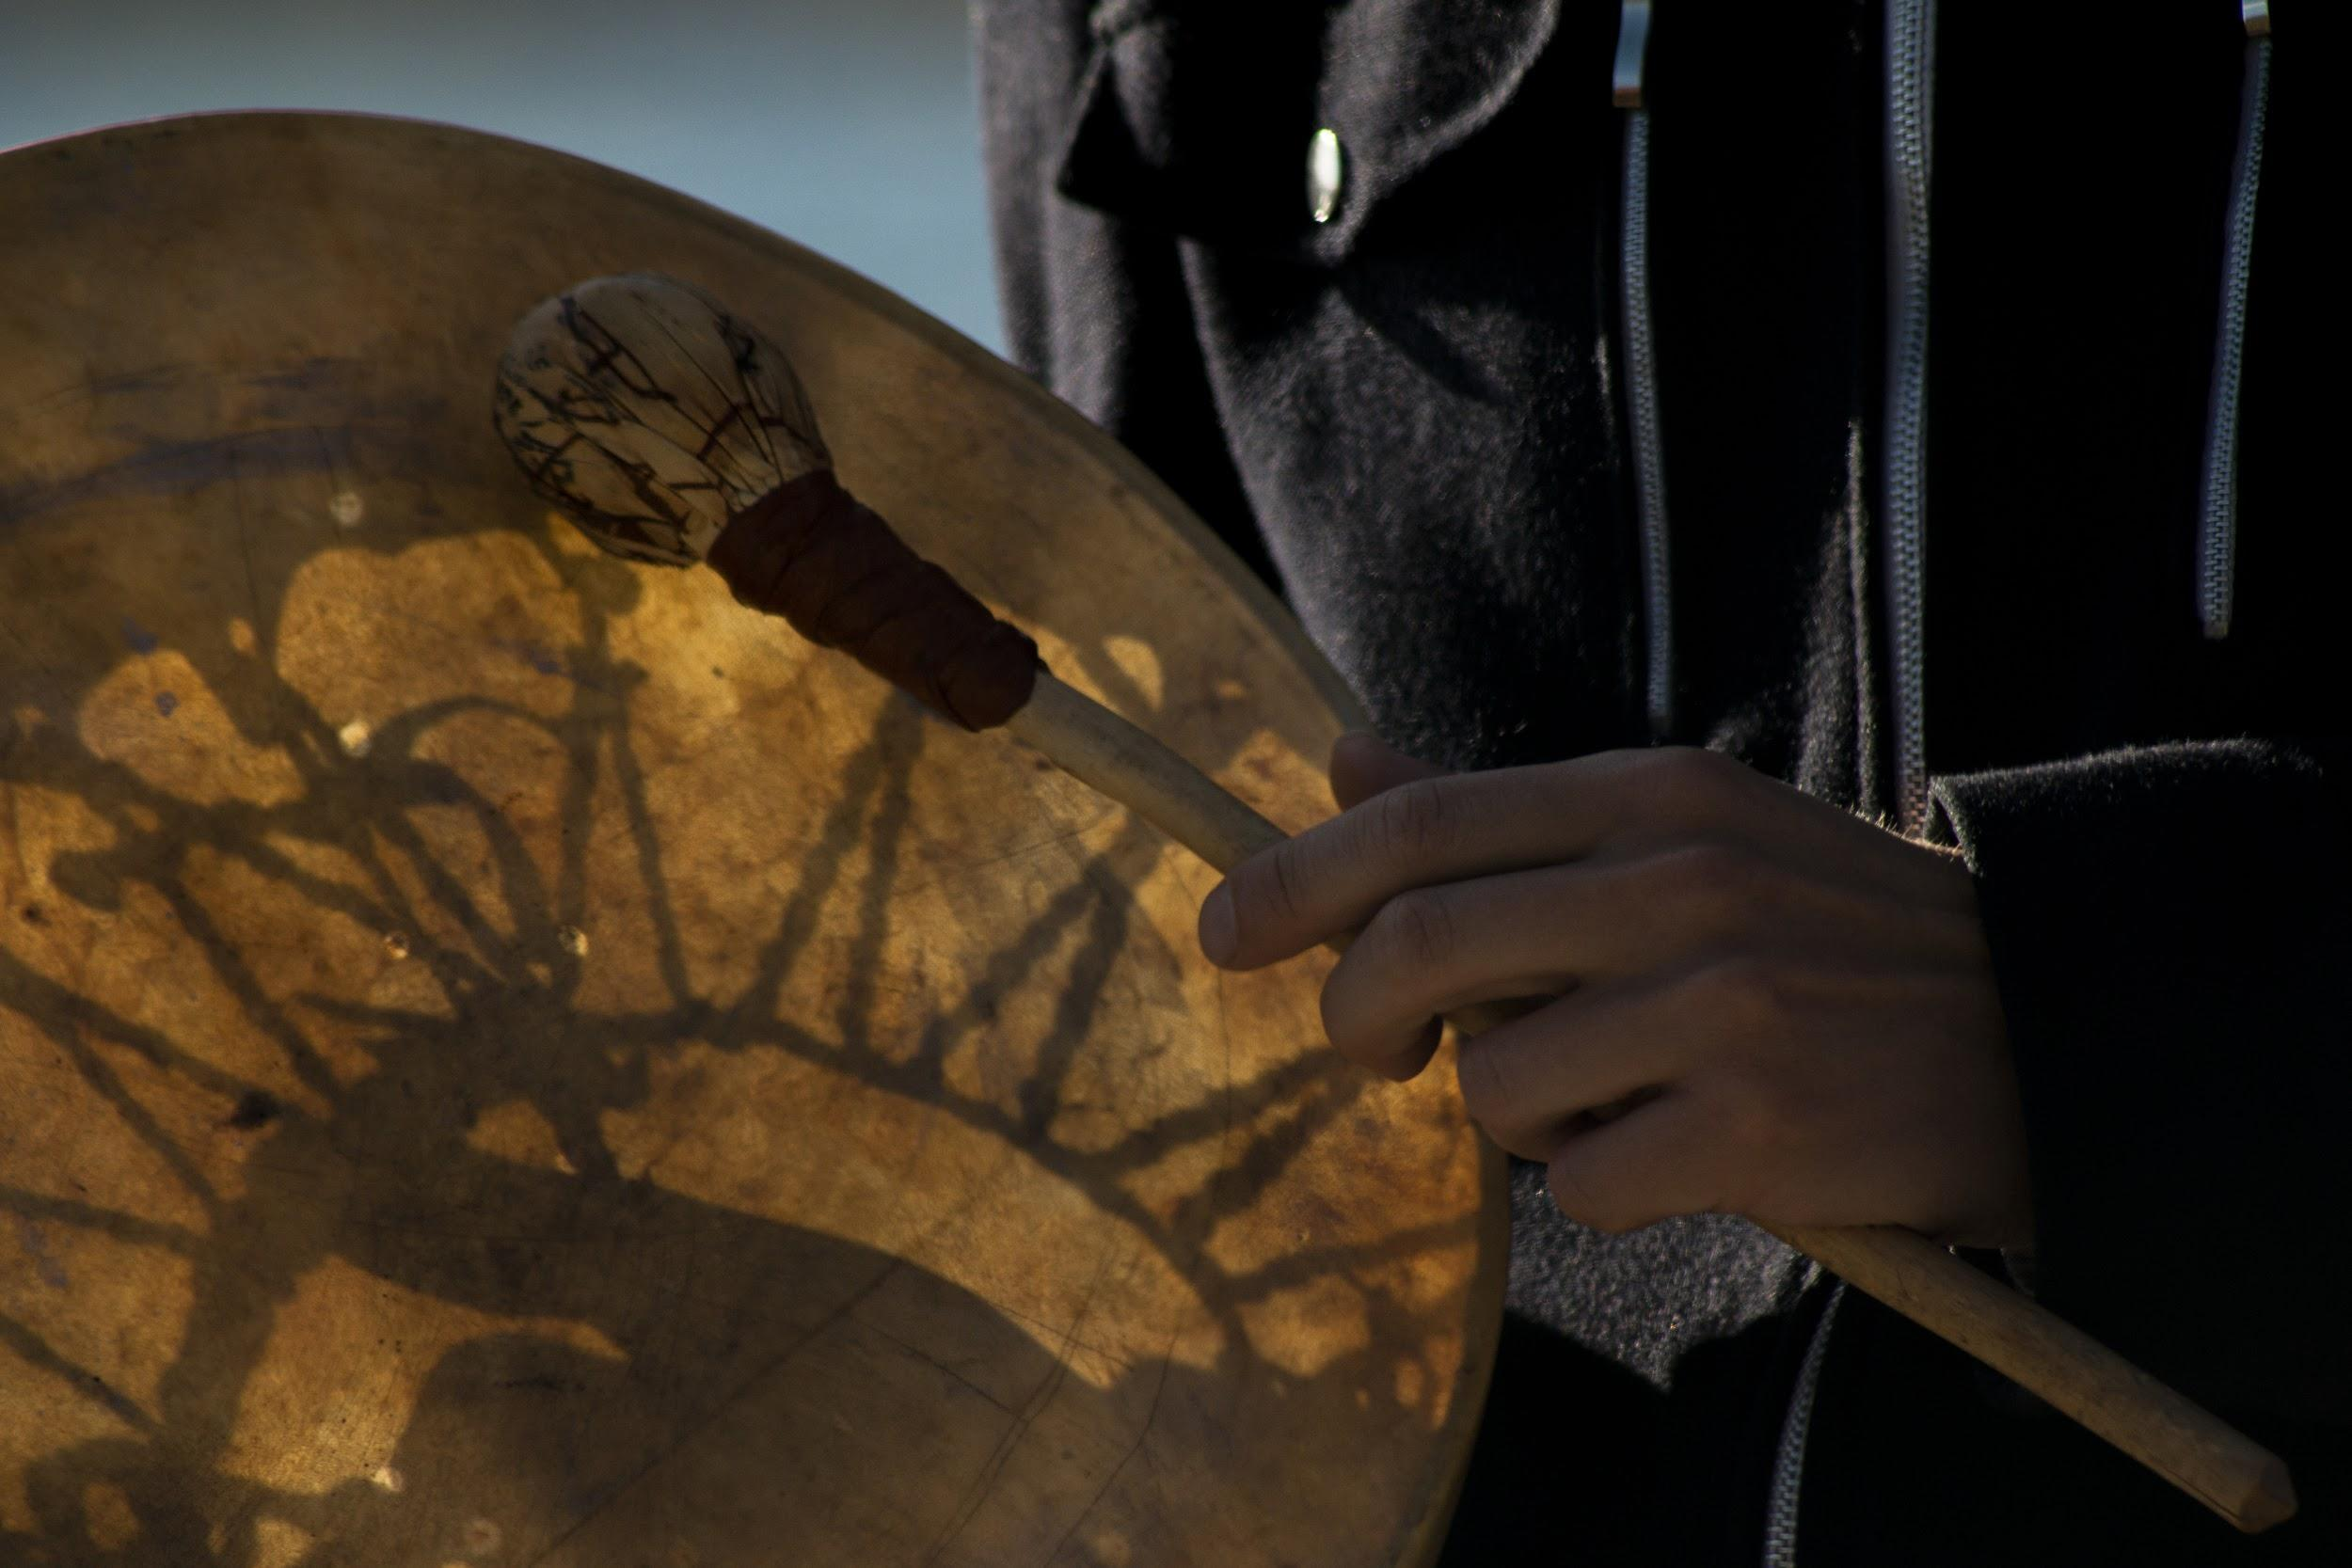 Drumming during a ritual and demonstration held in Romsa (Tromsø) in support to the Standing Rock protesters in the USA | Francesca Castagnetti / 2016